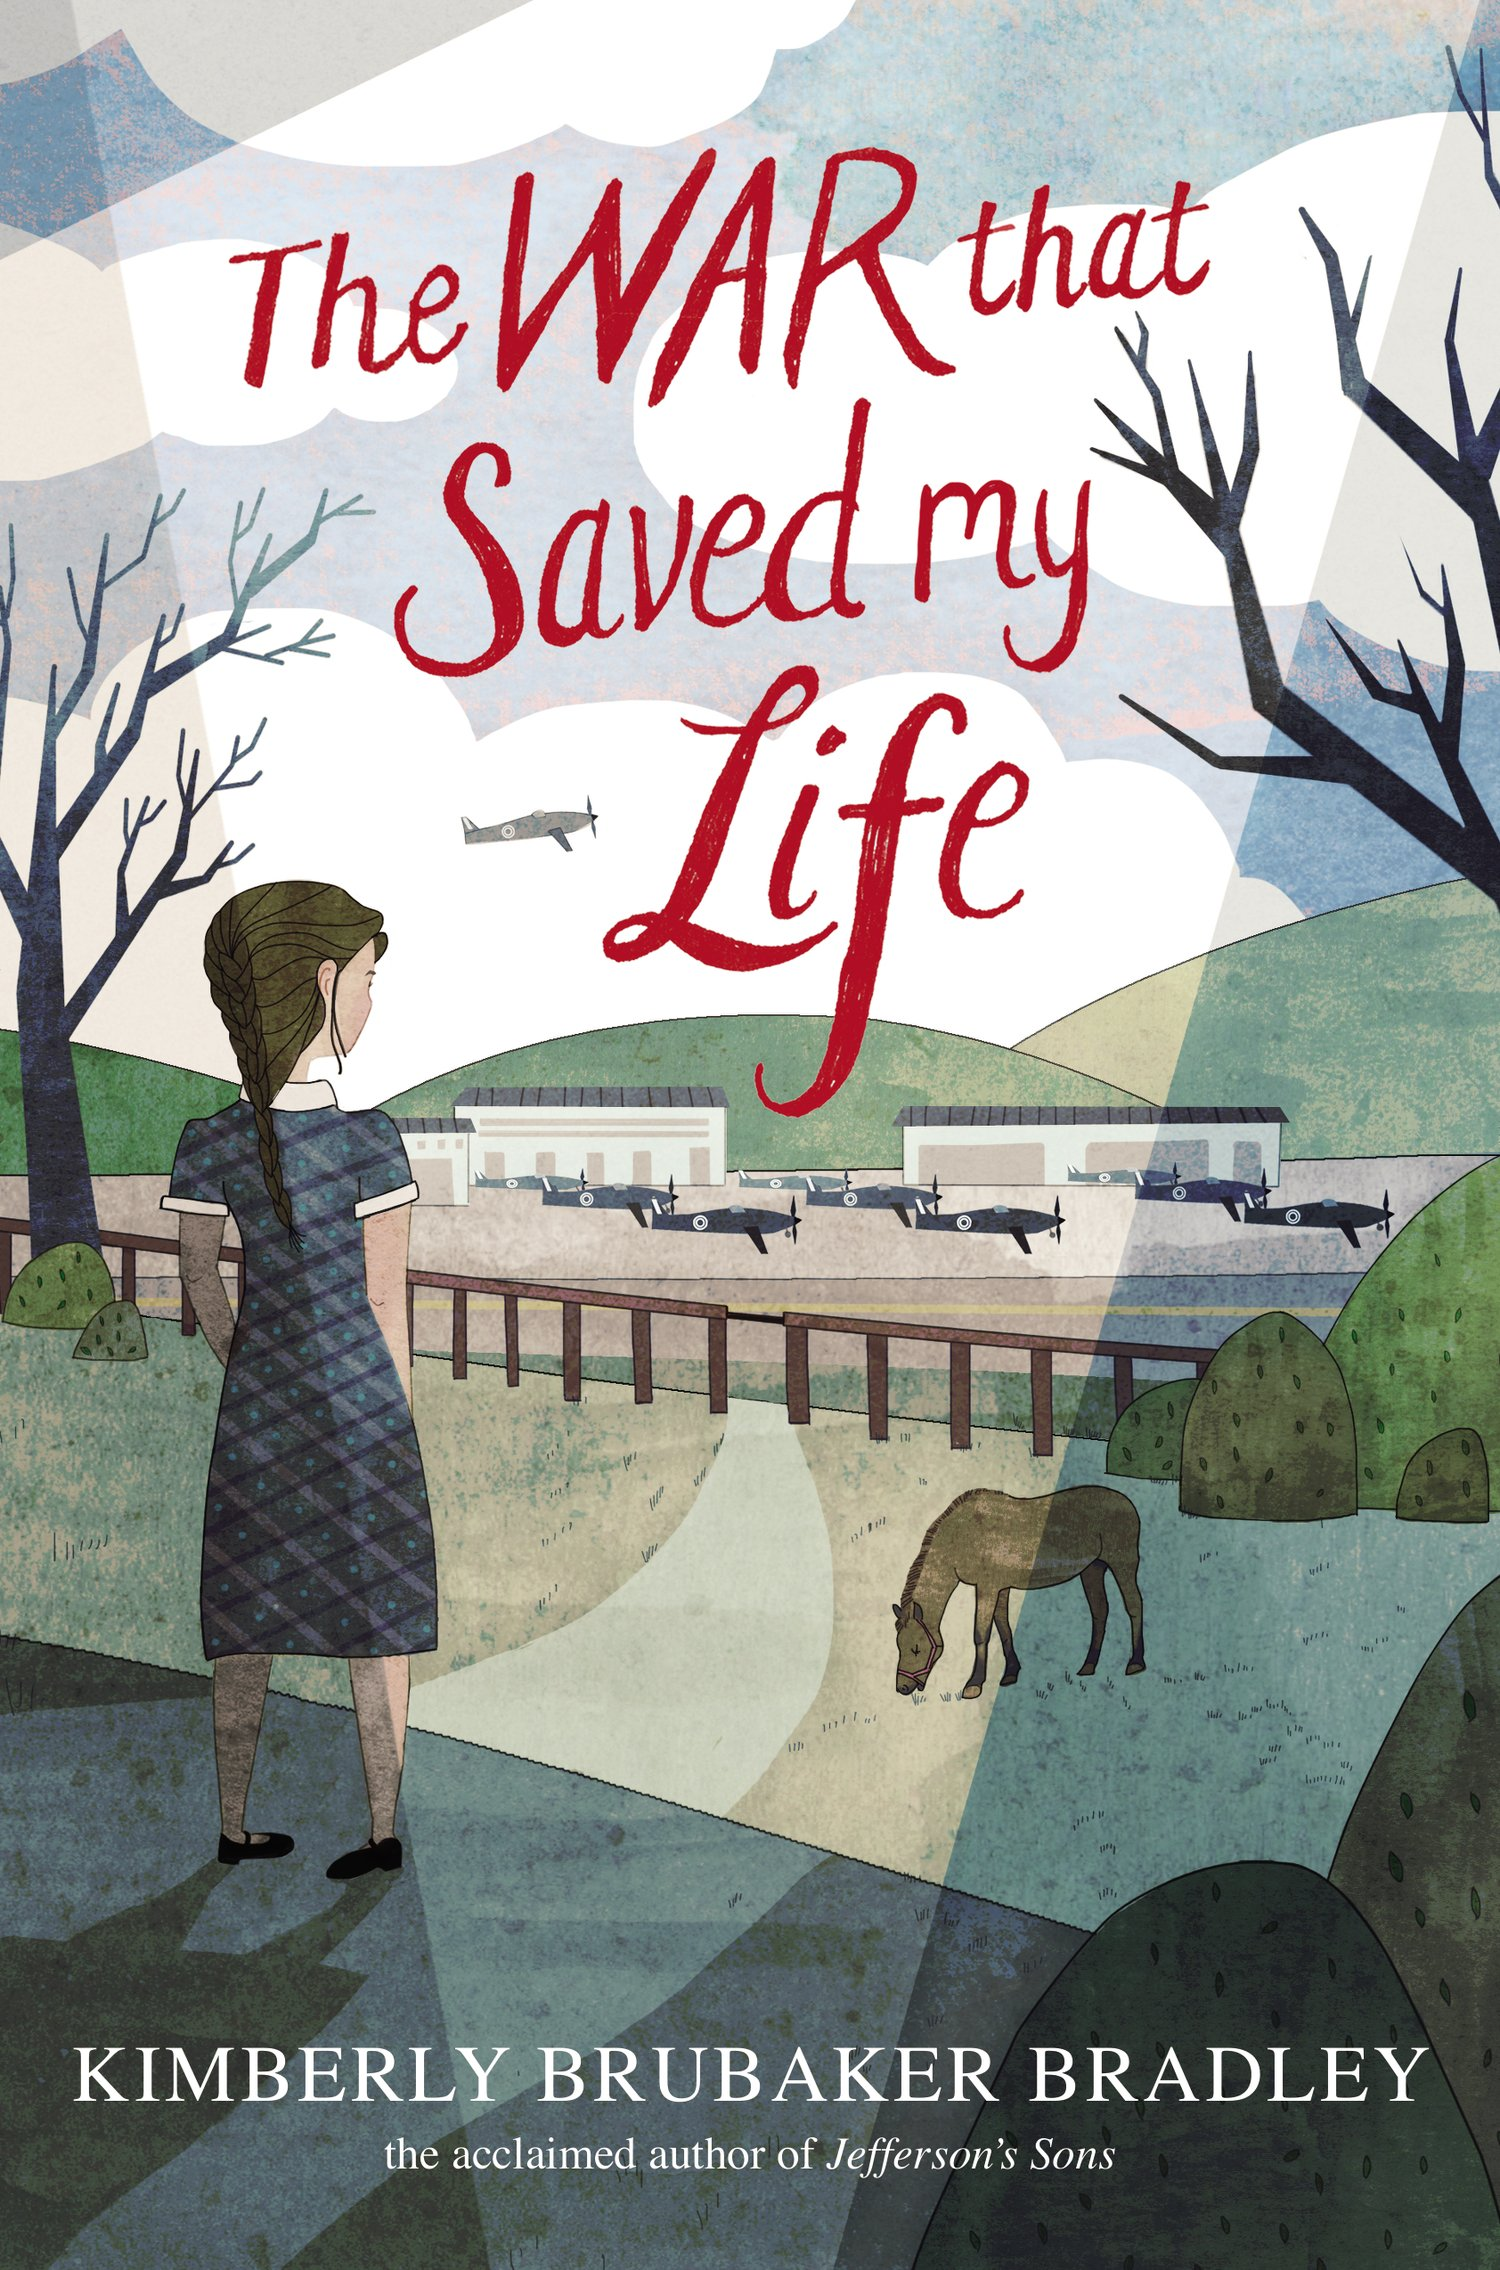 MG Book Review: The War that Saved My Life by Kimberly Brubaker Bradley